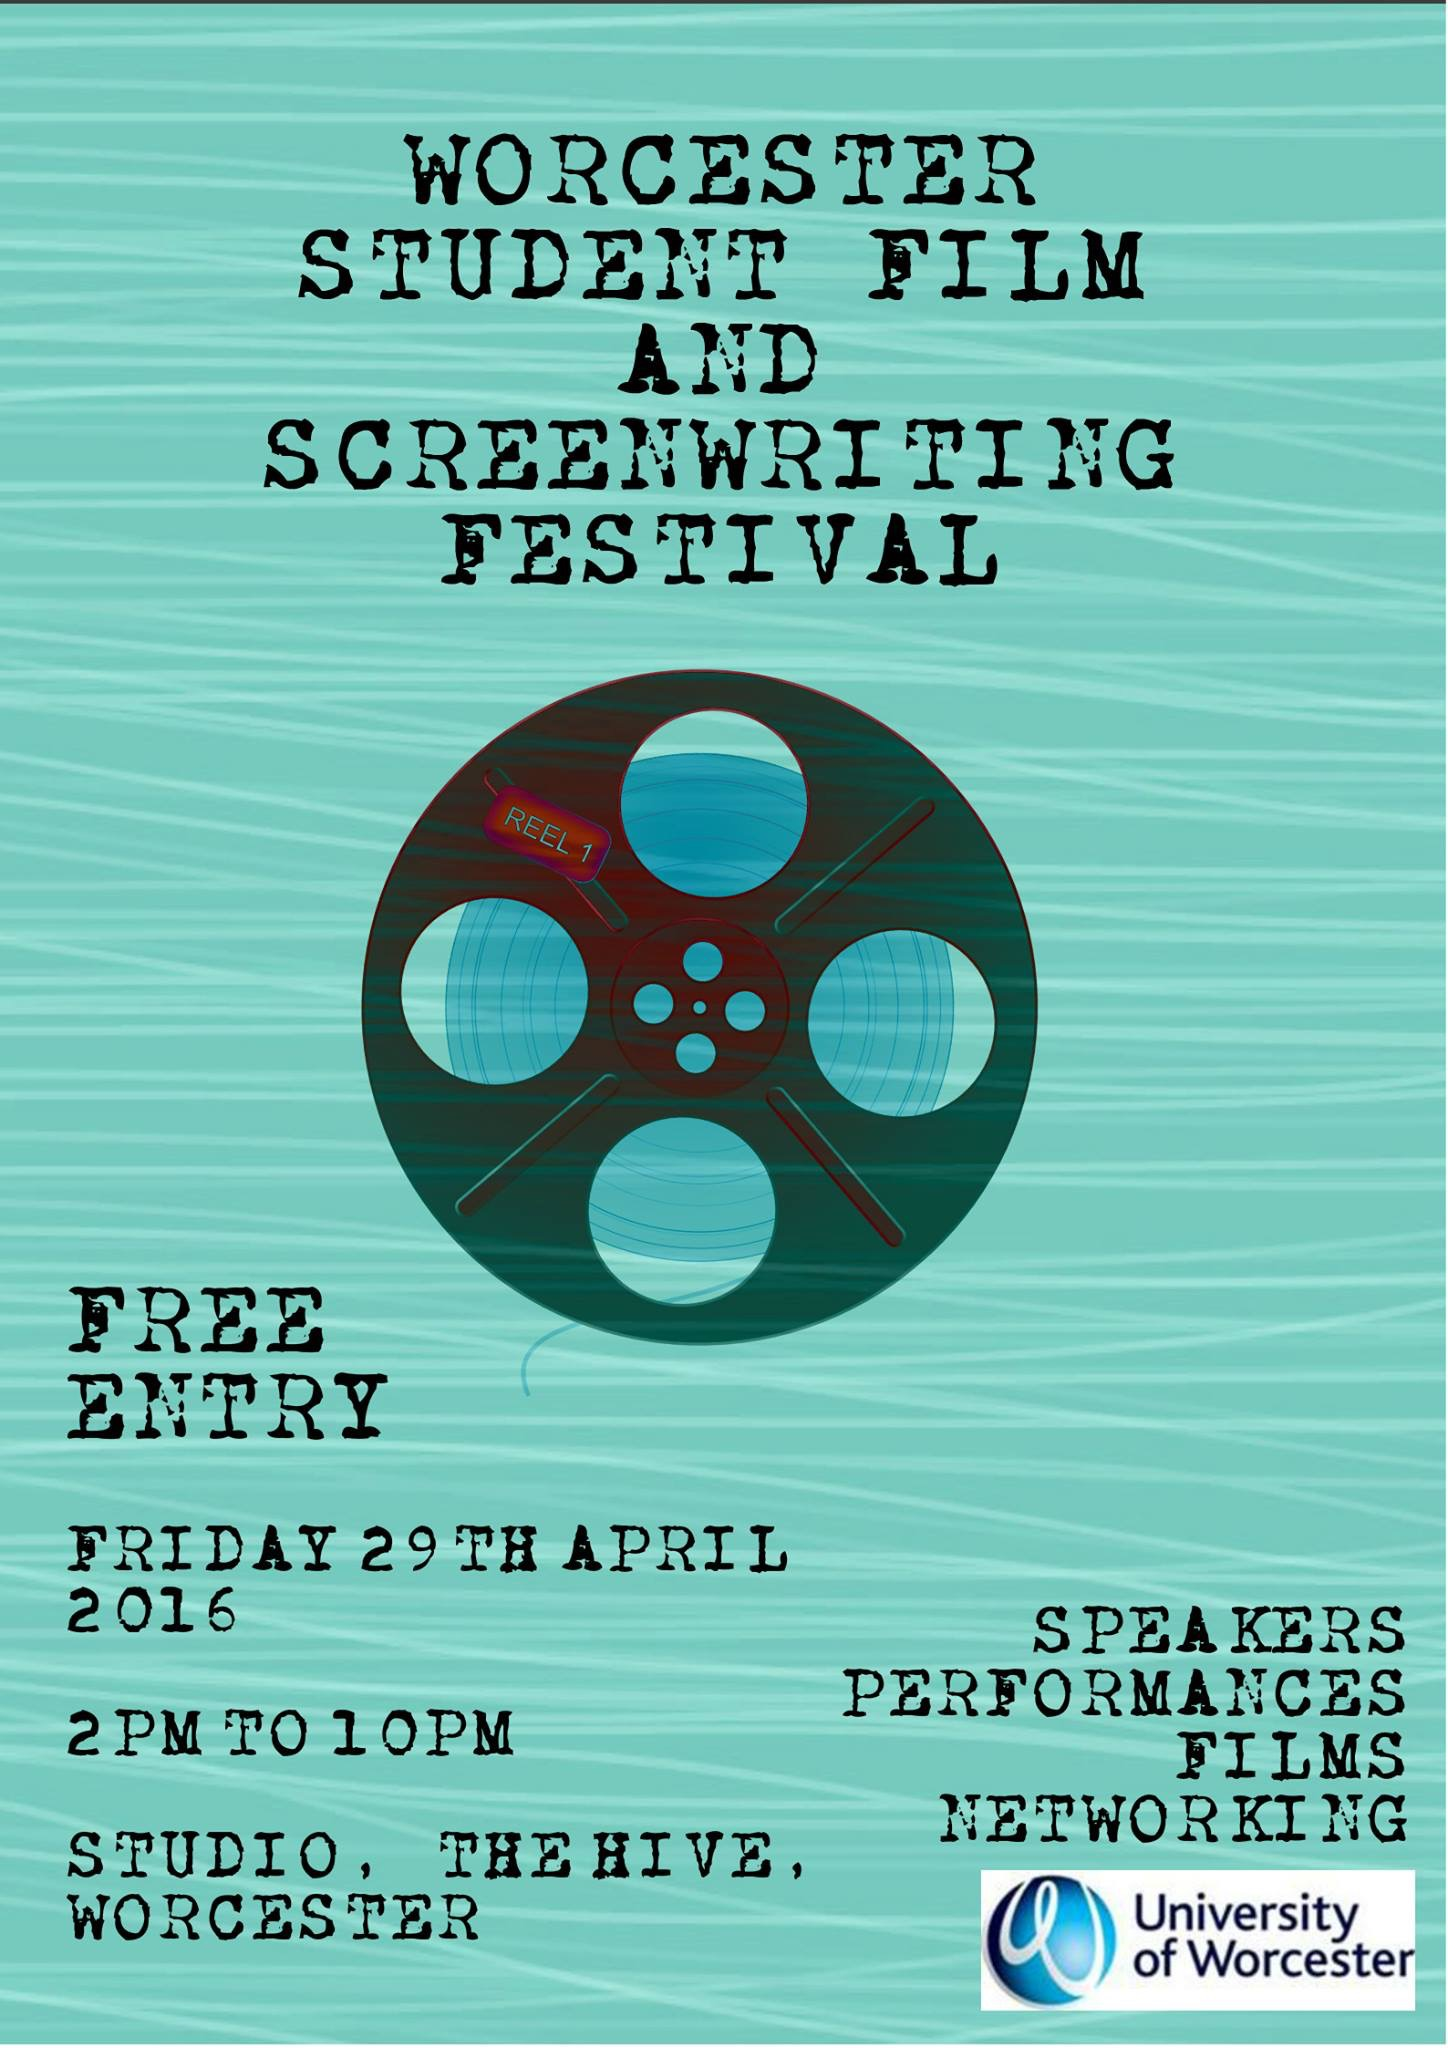 Worcester Student Film and Screenwriters Festival